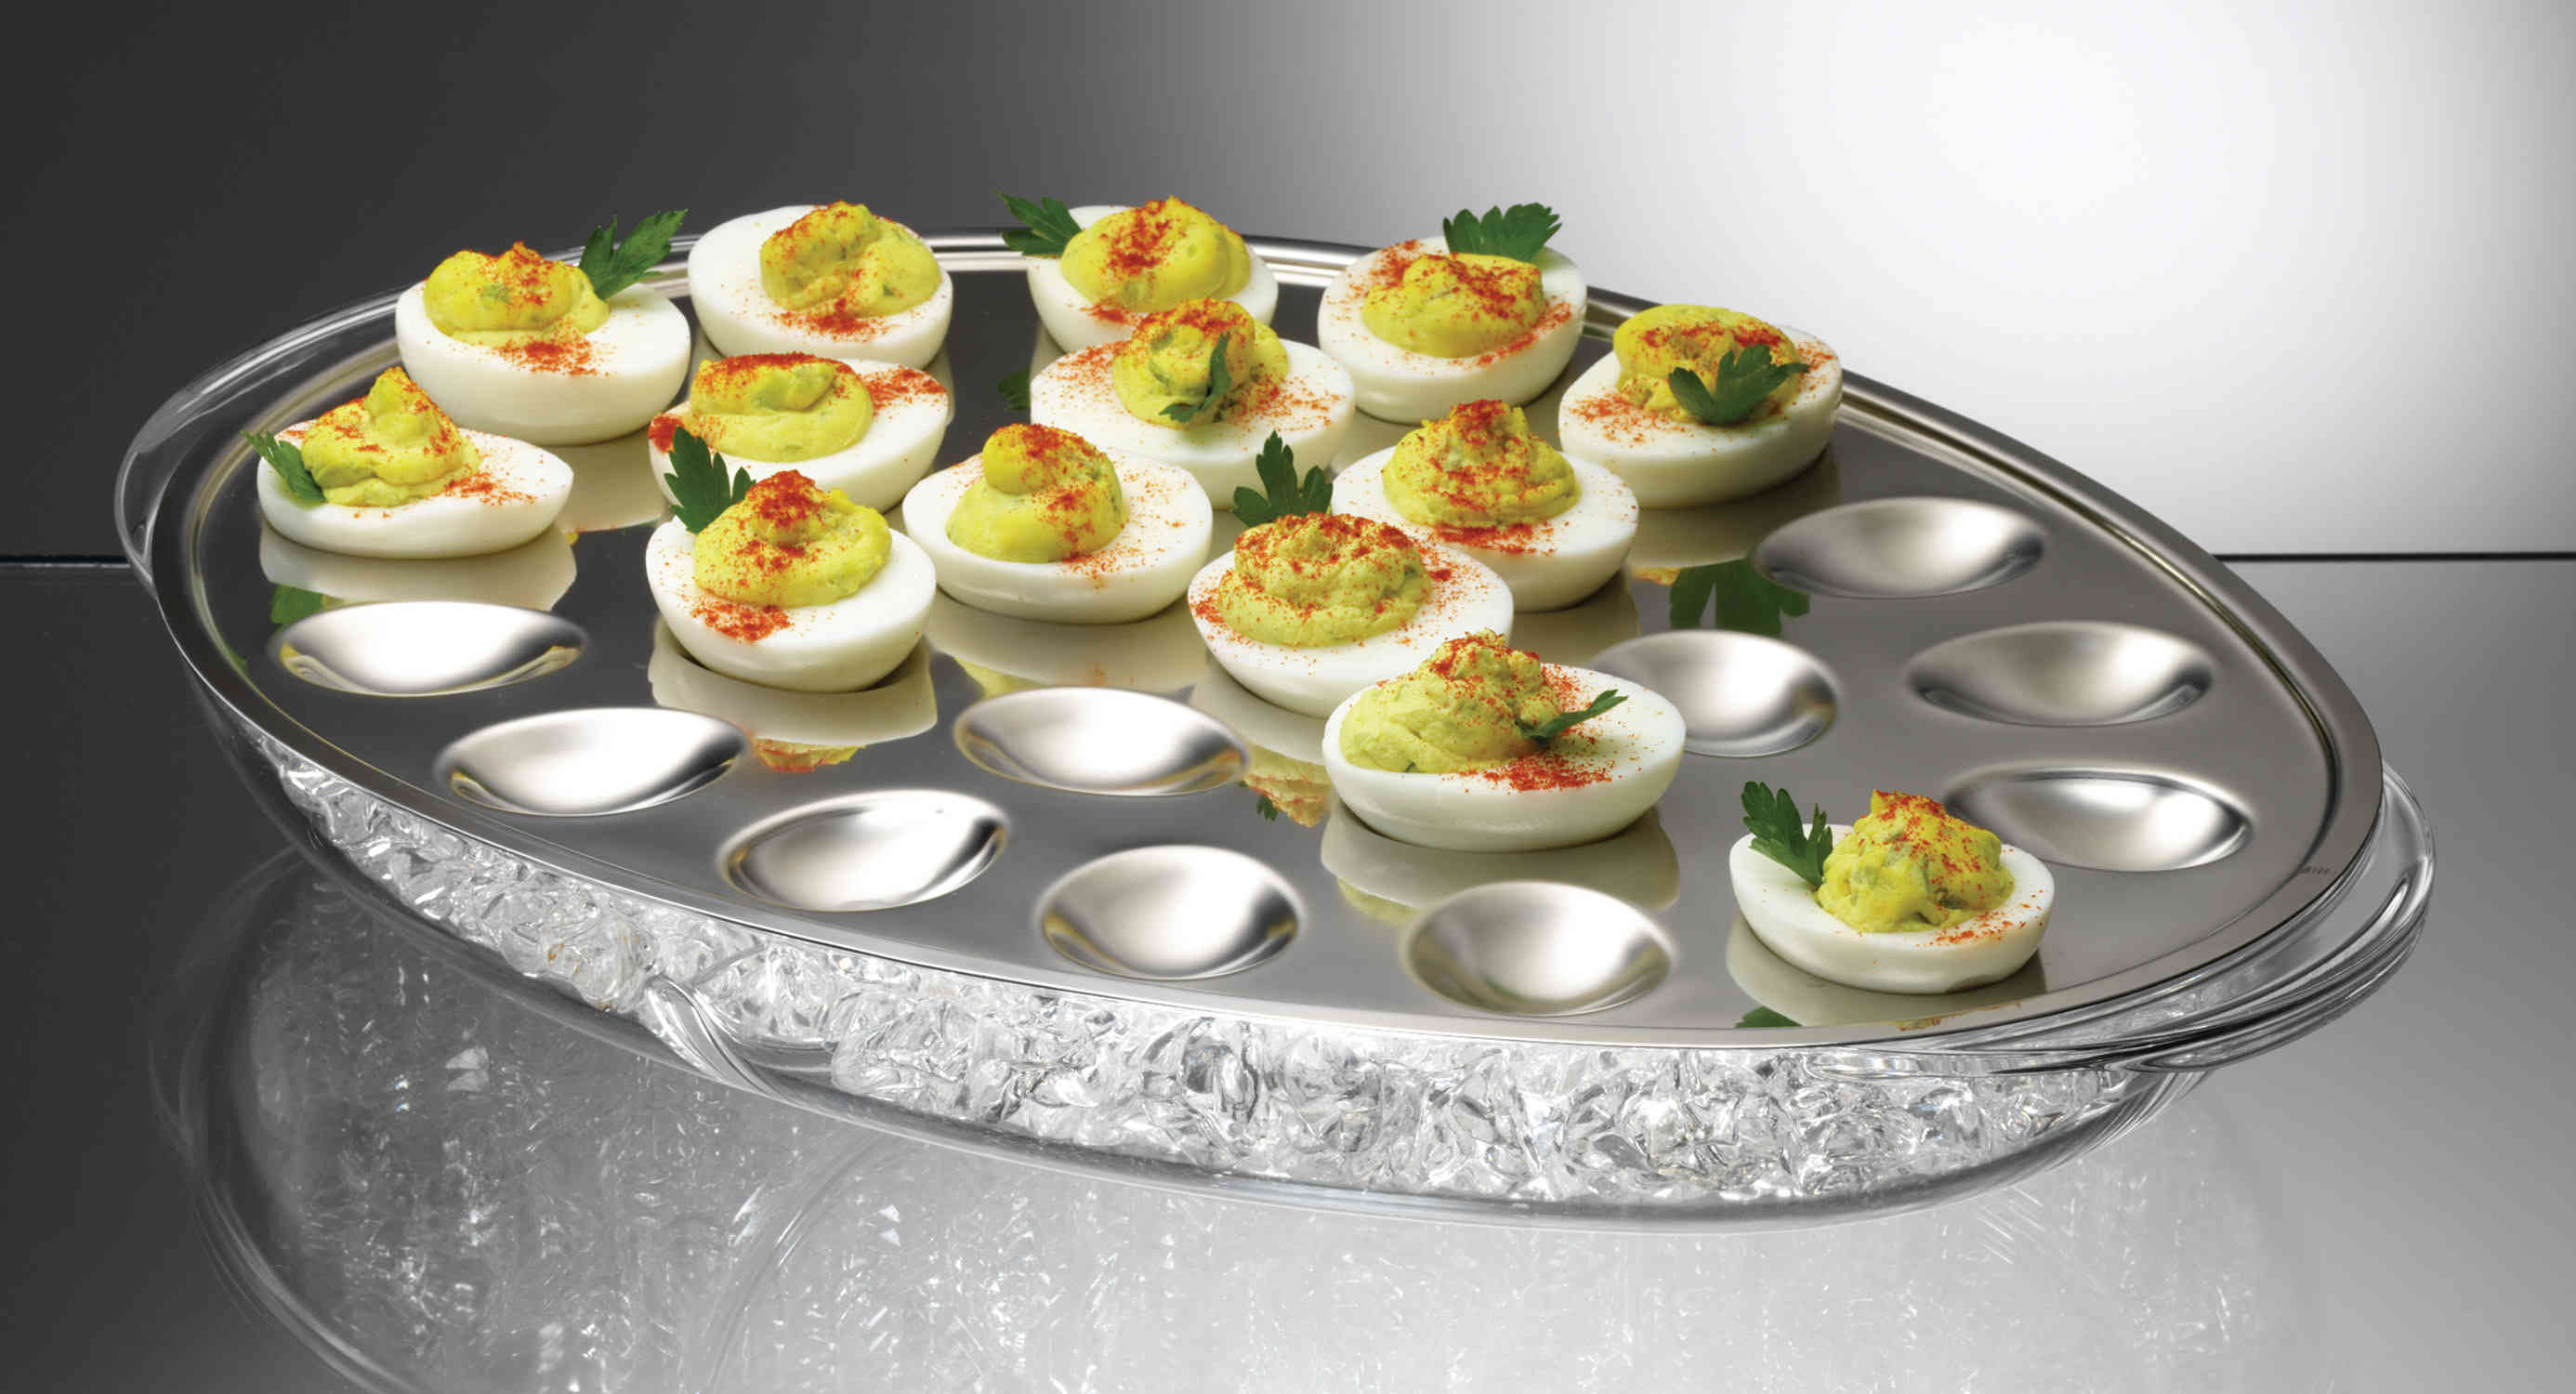 PRODYNE IC24 ICED EGGS HOLDS 24 DEVILED EGG HALVES